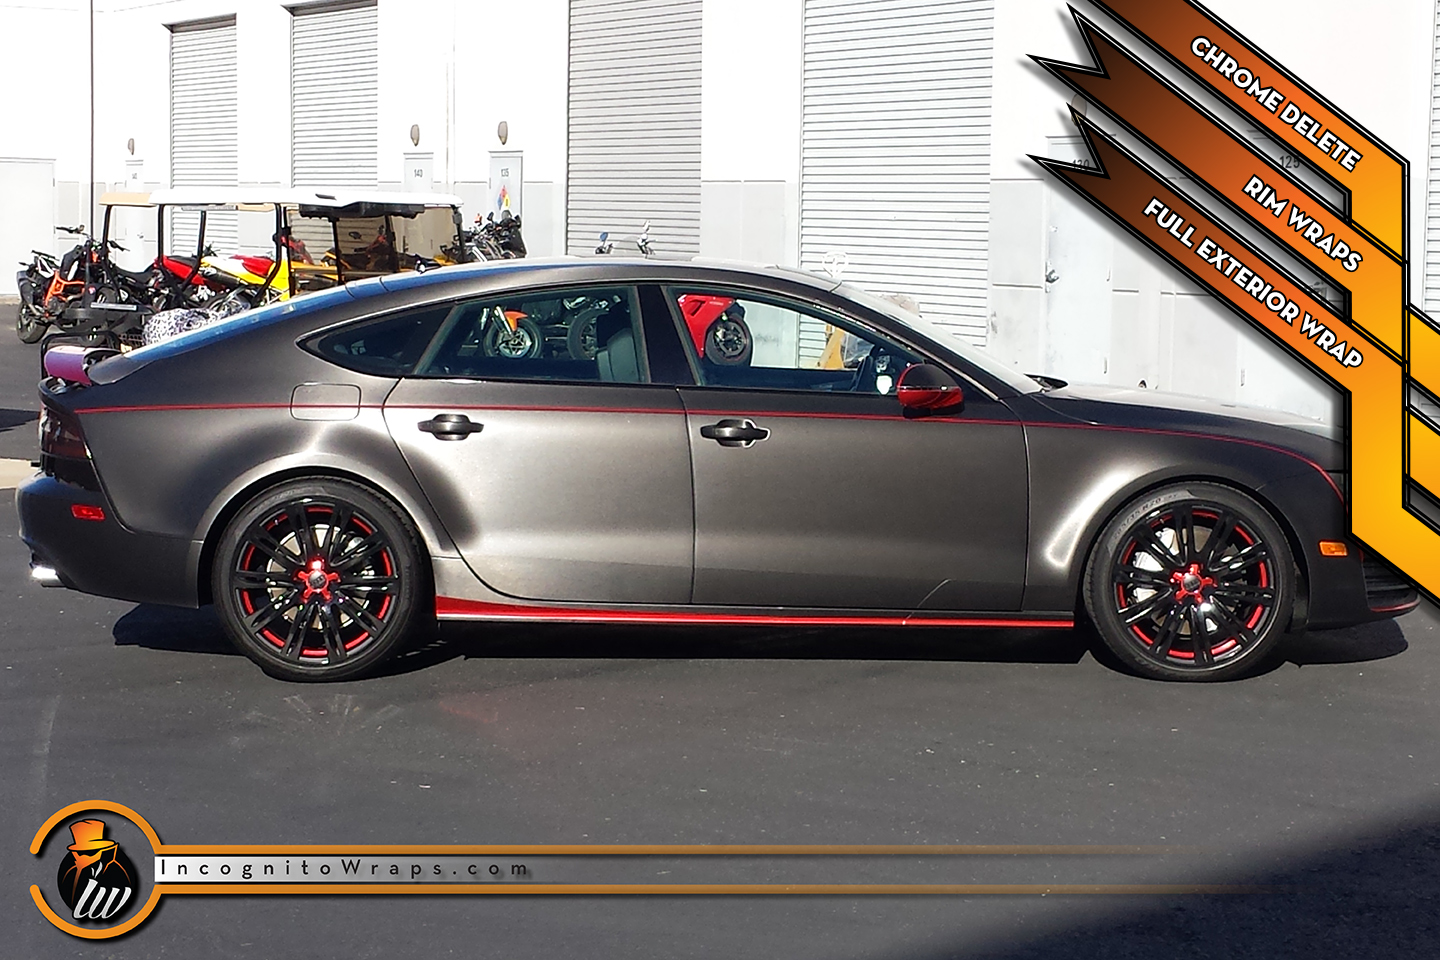 Audi A7 - Brushed Black, Red Chrome and Gloss Black Wrap